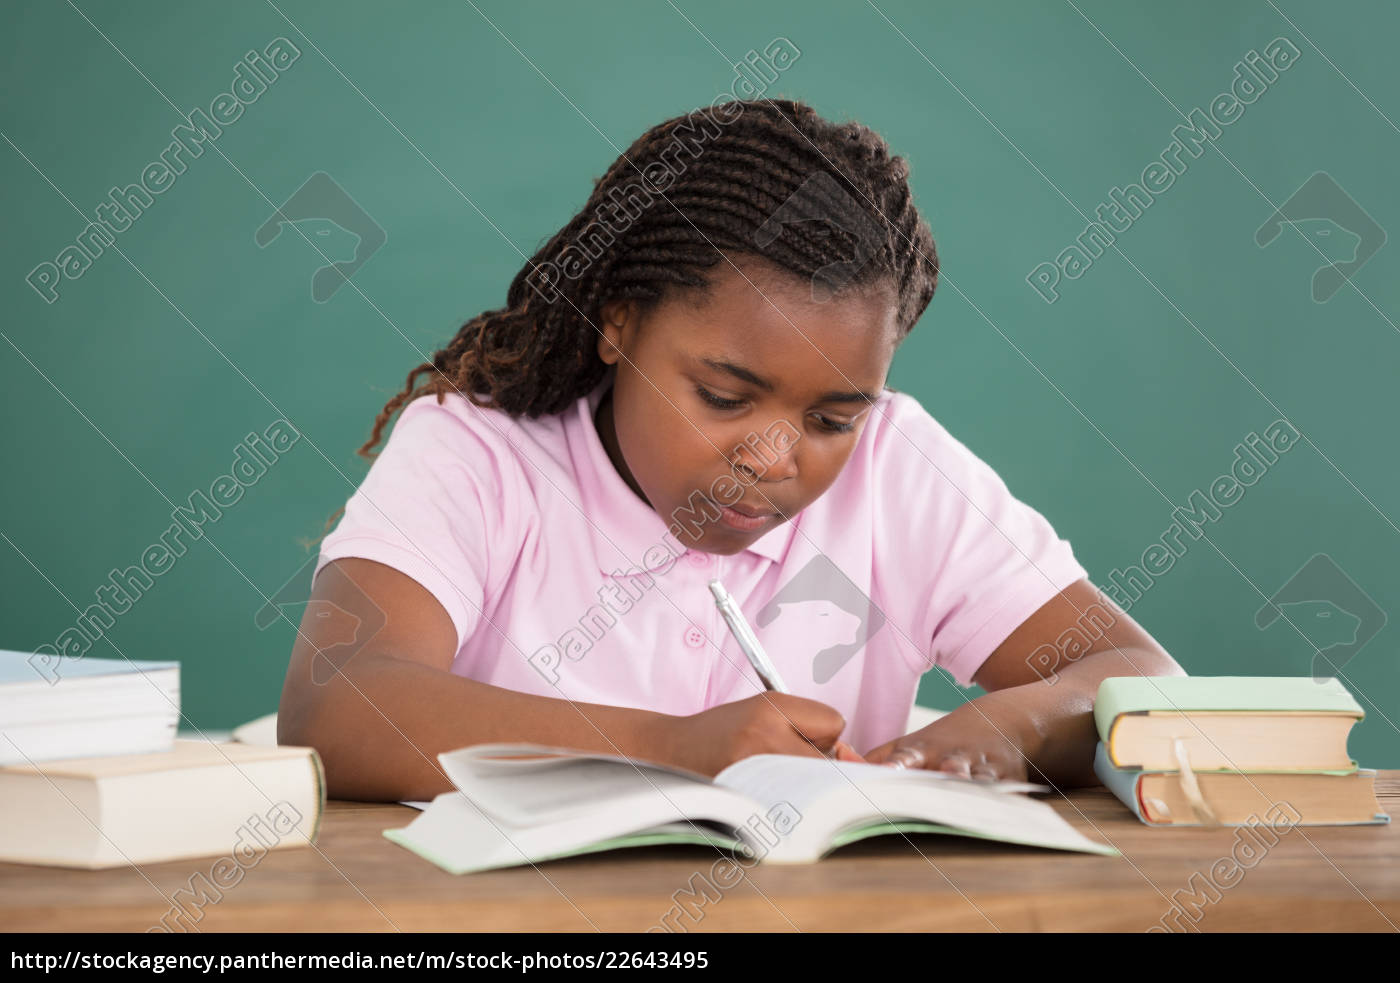 girl, studying, in, class - 22643495